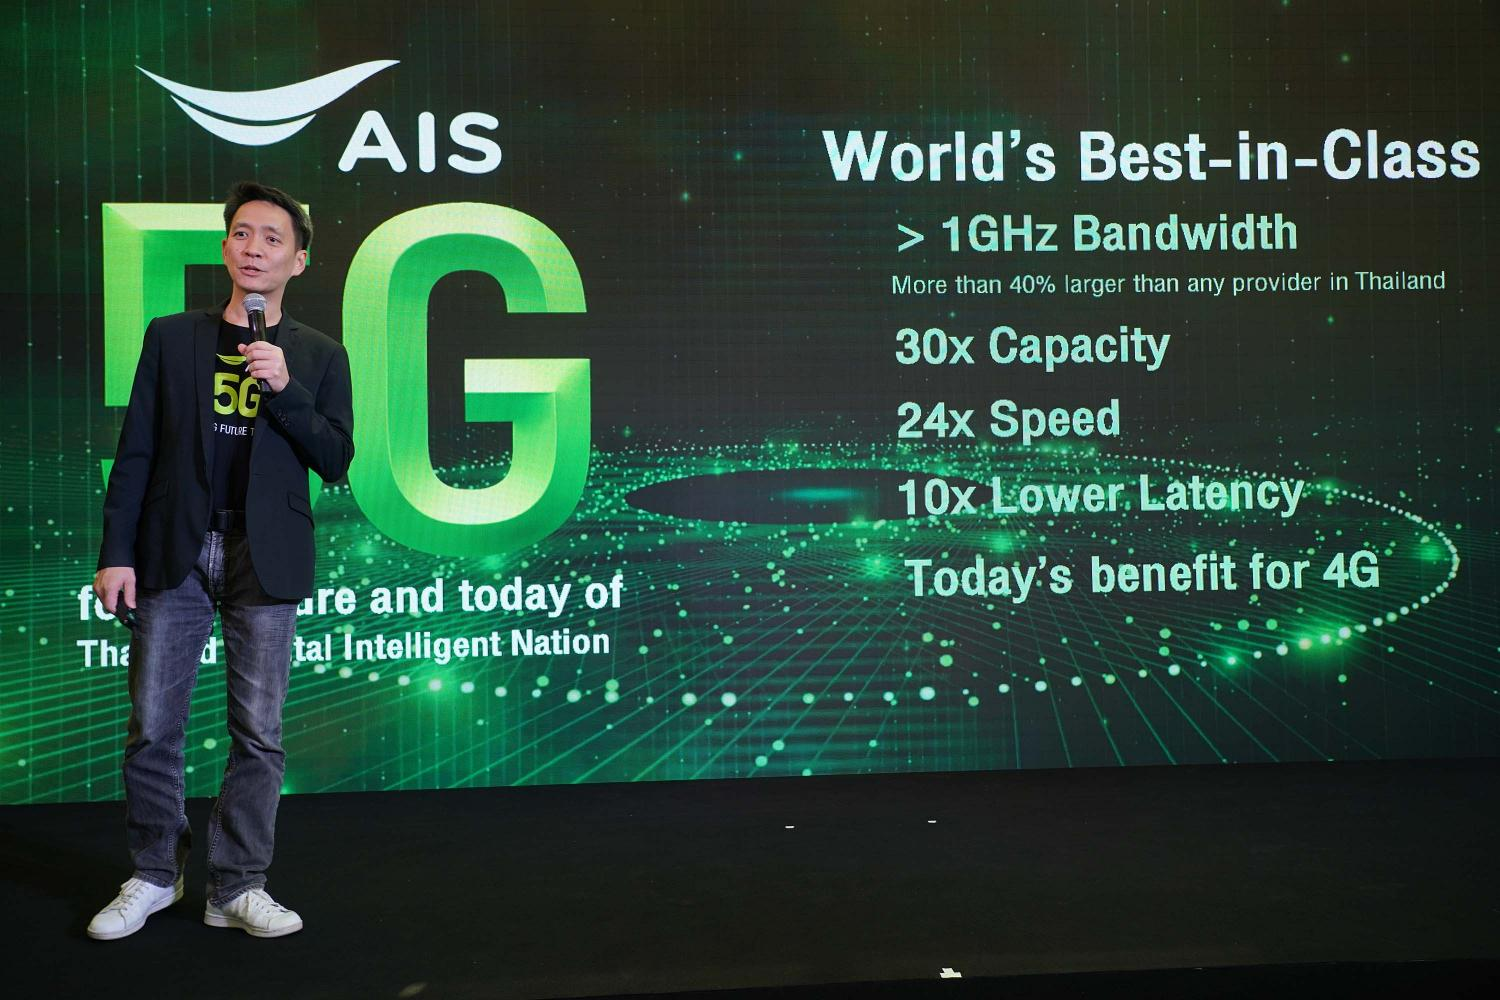 Mr Pratthana says AIS intends to invest in the full spectrum of the 5G block on all frequency ranges.